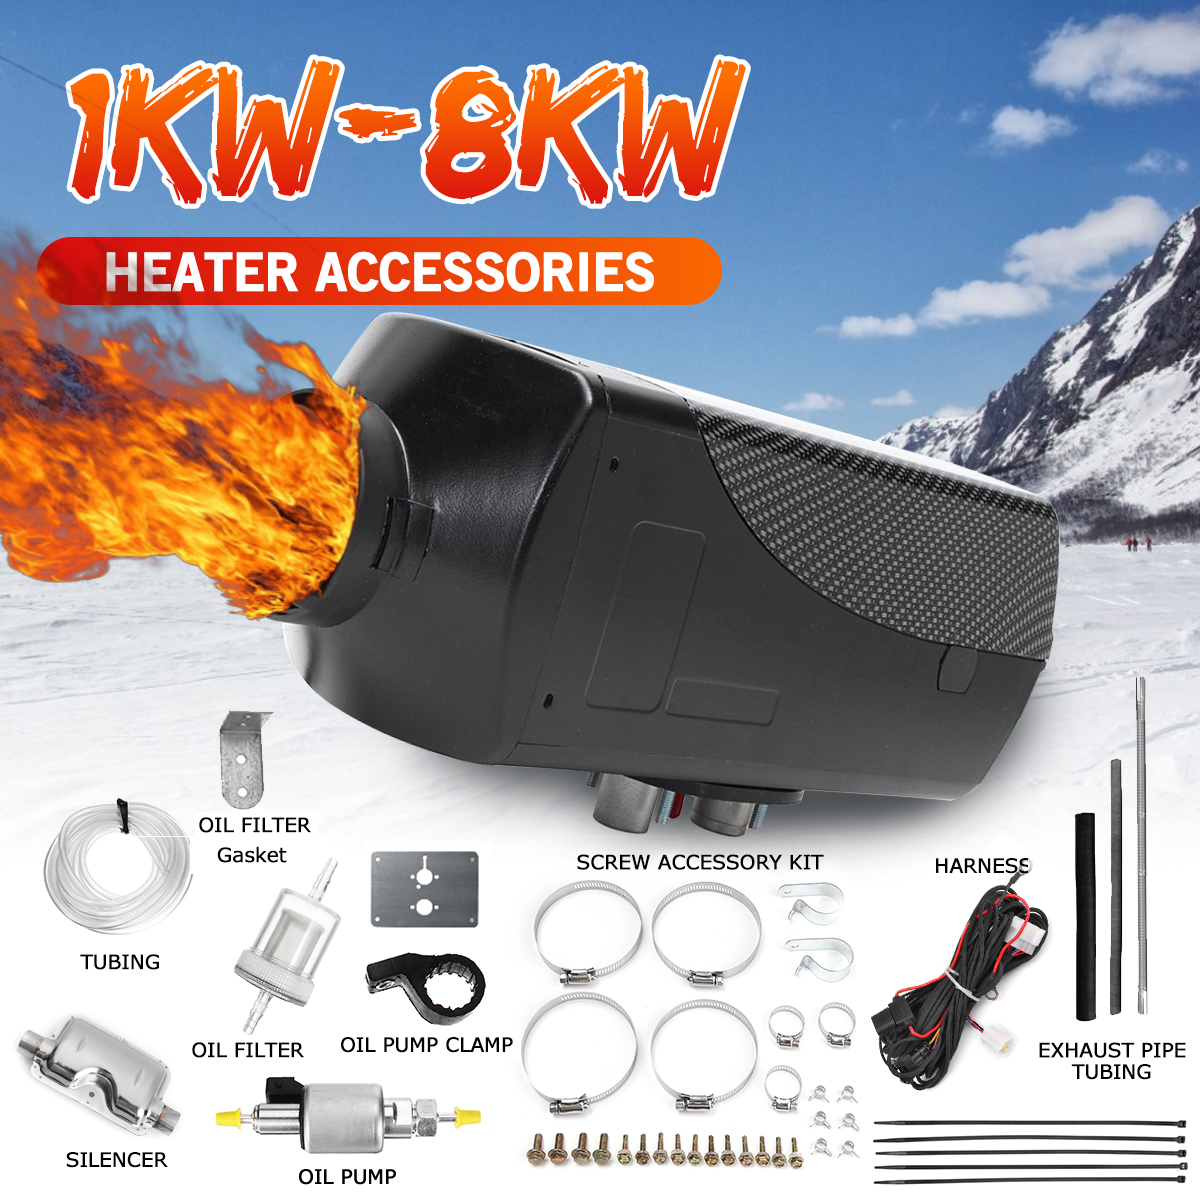 Full set of accessories for 1-8kw car heater accessories diesel fuel oil filter silencer outlet pipe for RV trailer auto parts